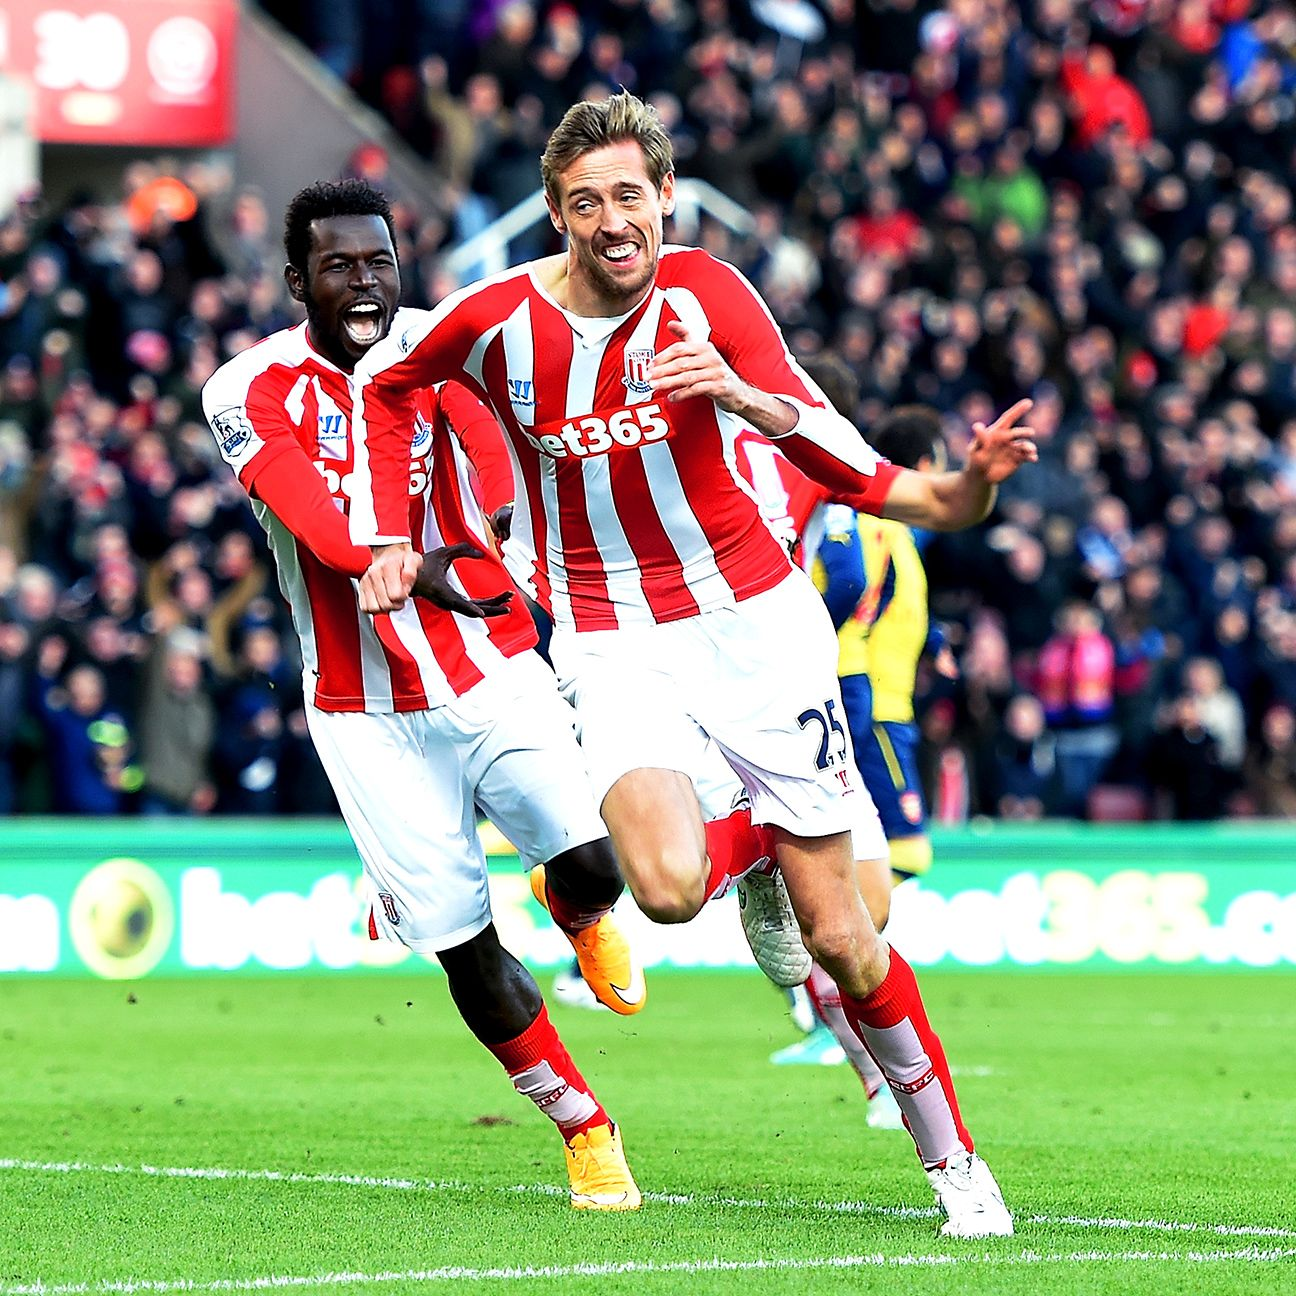 Stoke head to Crystal Palace on the heels of a buoyant home win over Arsenal.